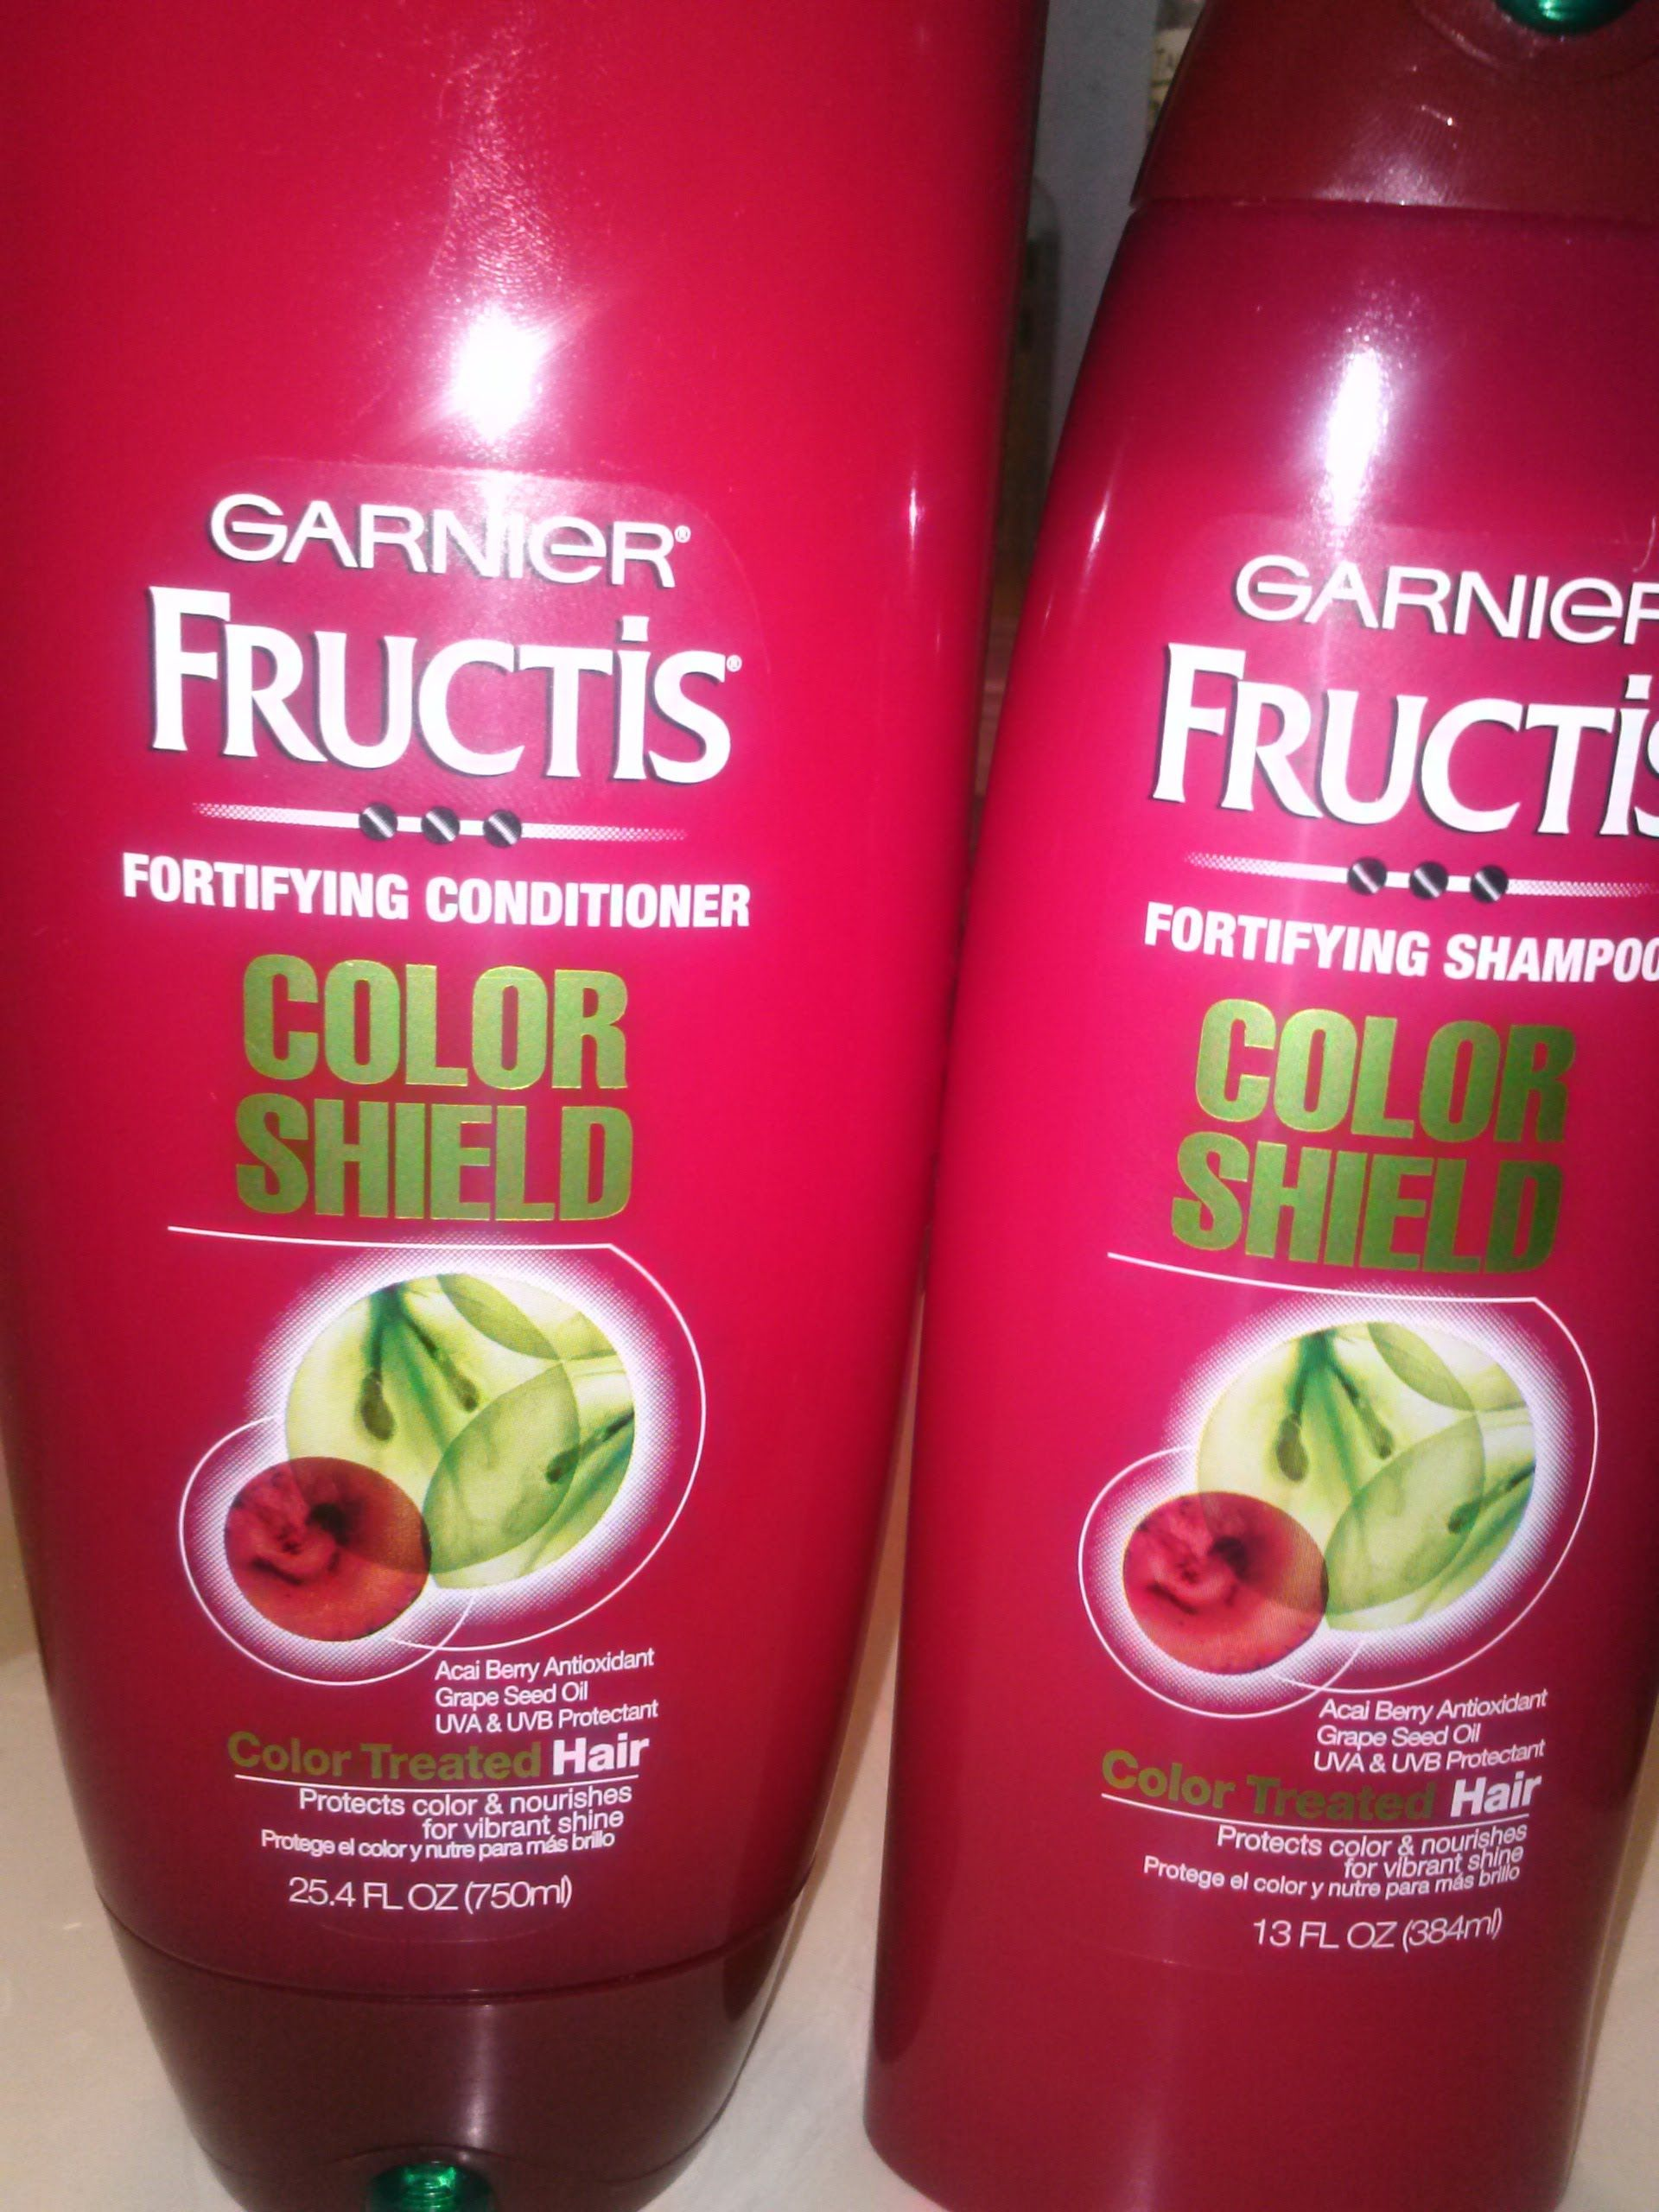 Garnier Fructis Fortifying Shampoo And Conditioner Color Shield On